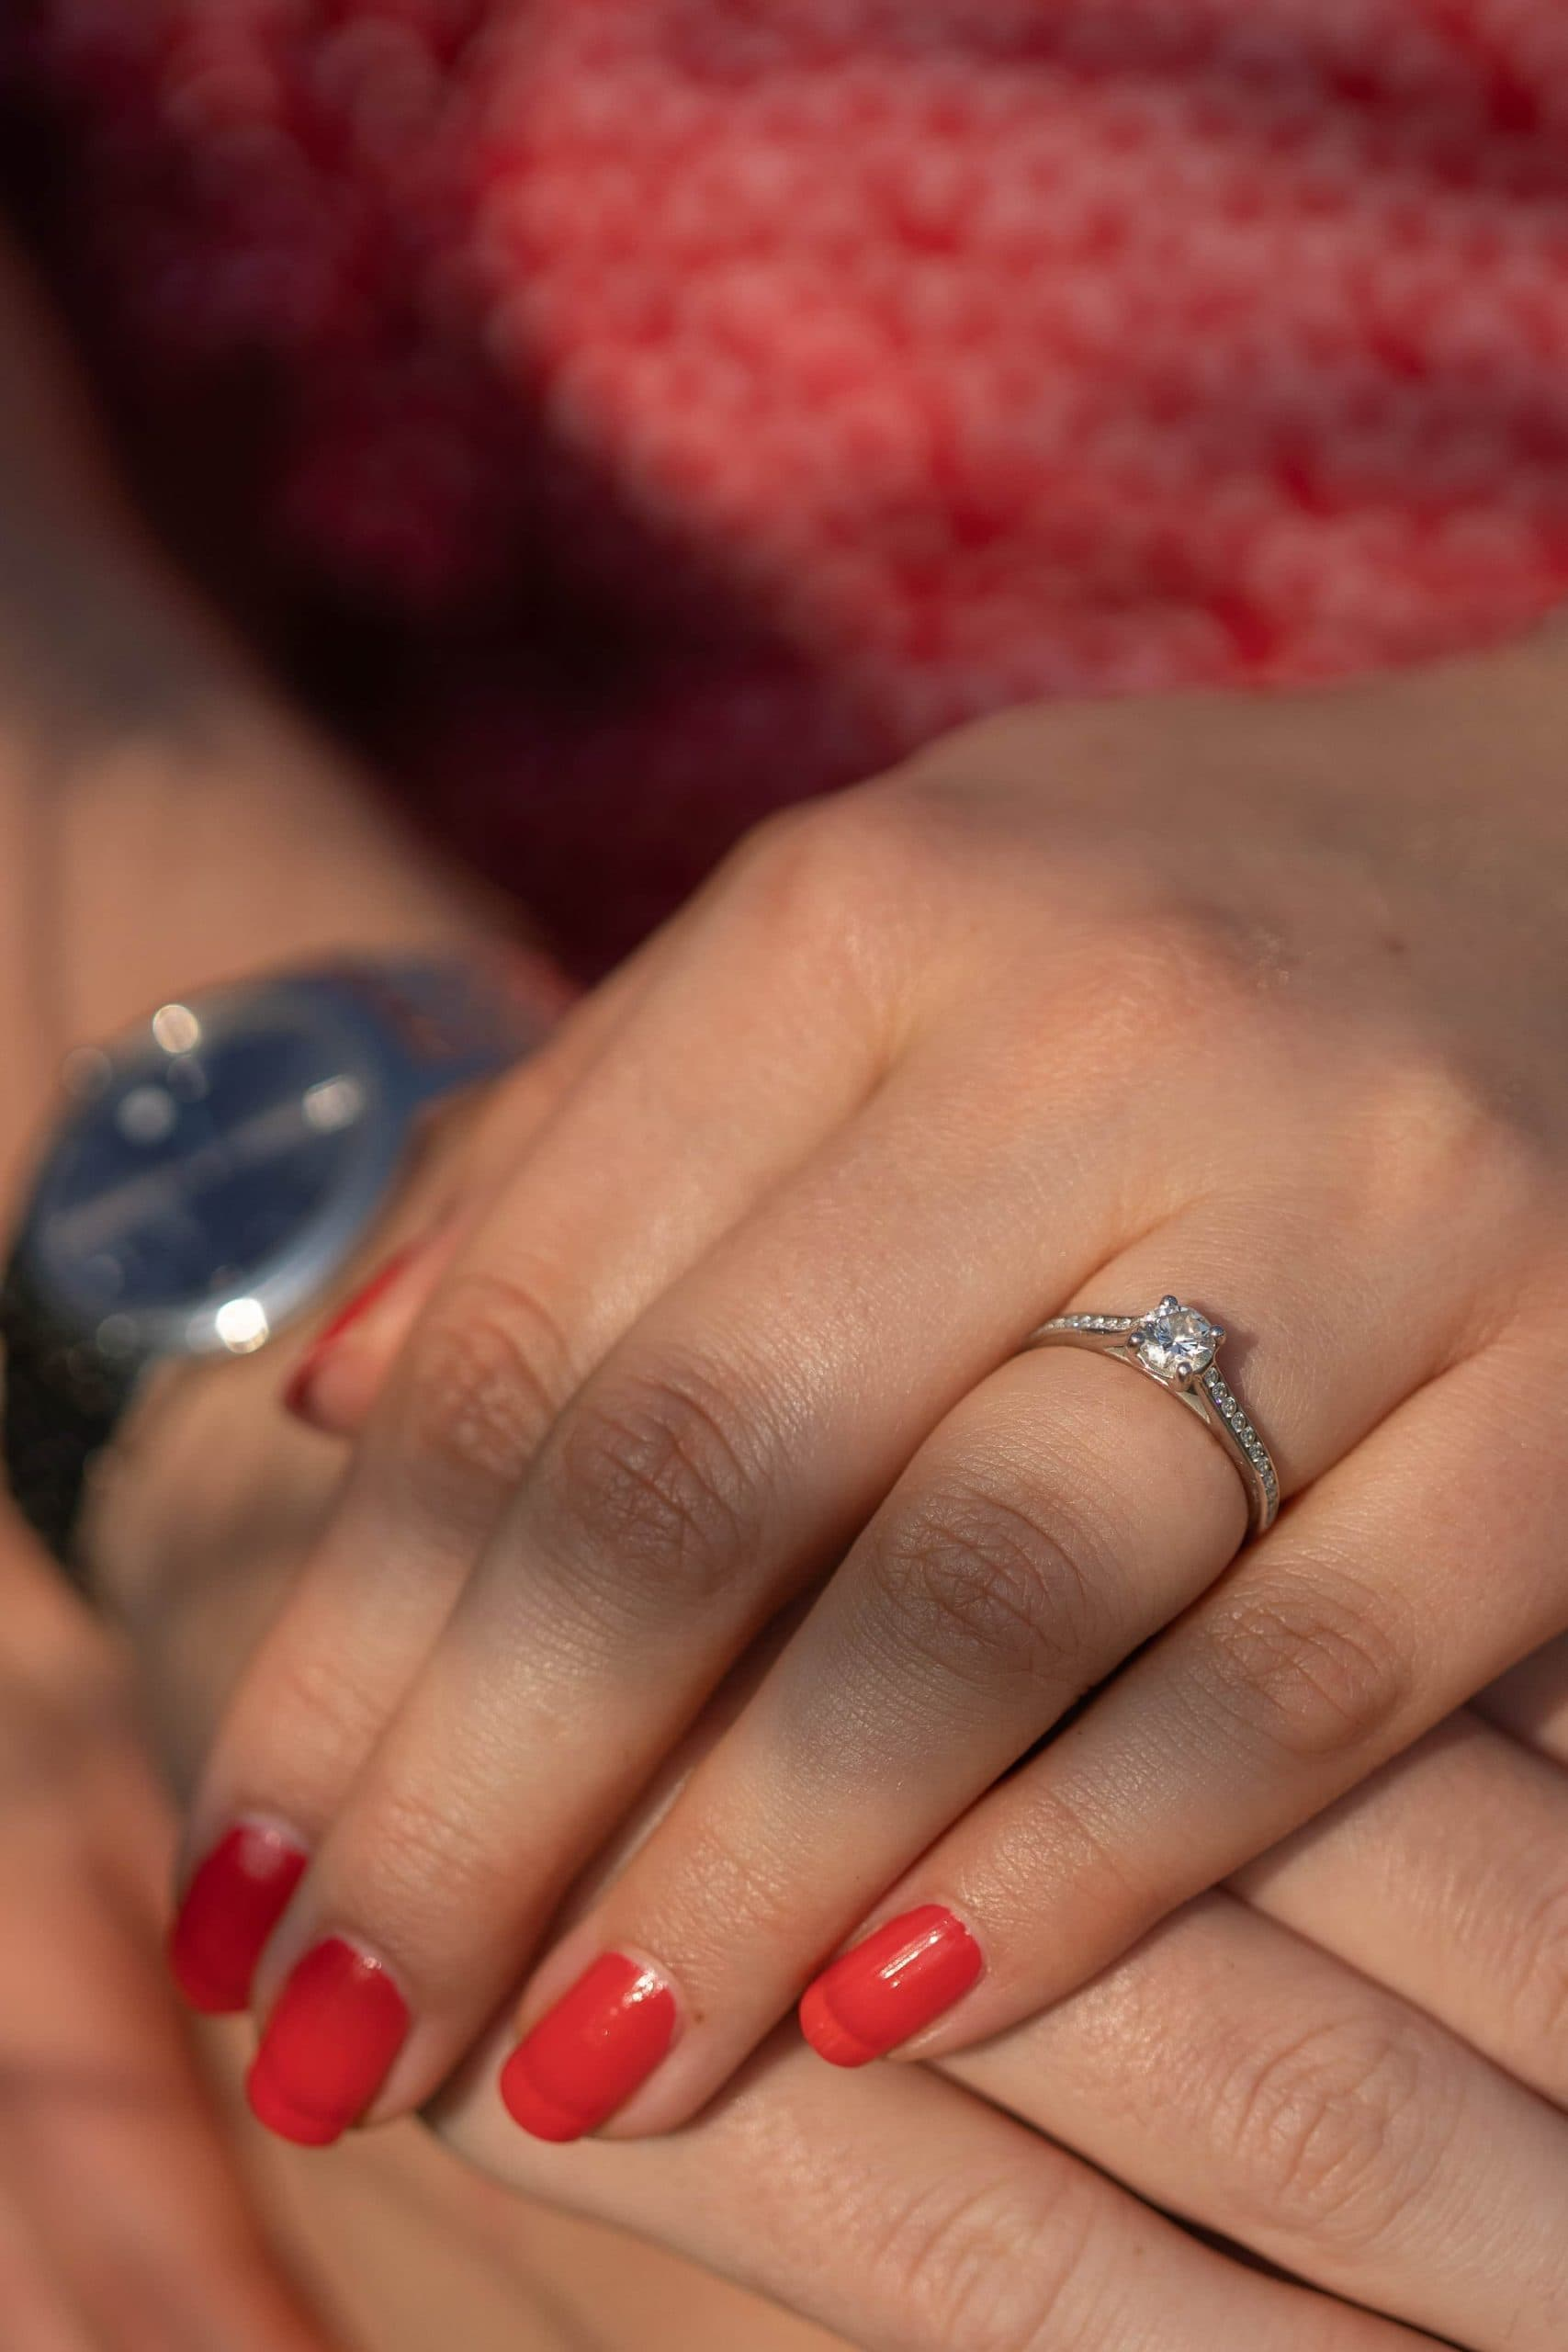 couples-holding-hands-with-engagement-ring